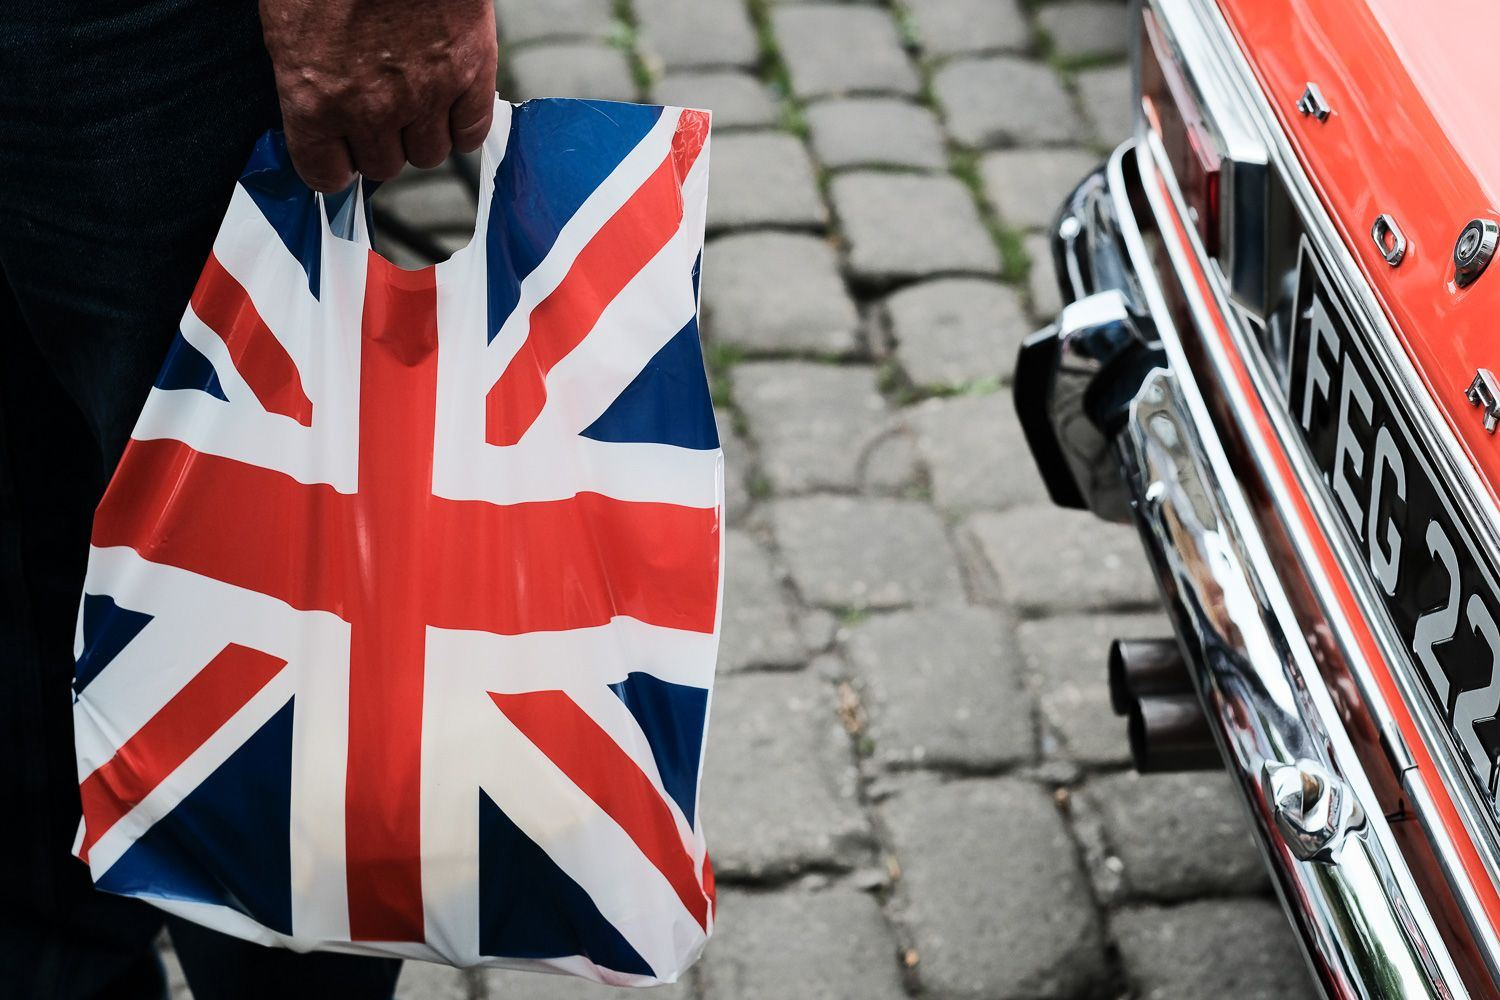 street photo of man carrying union flag carrier bag